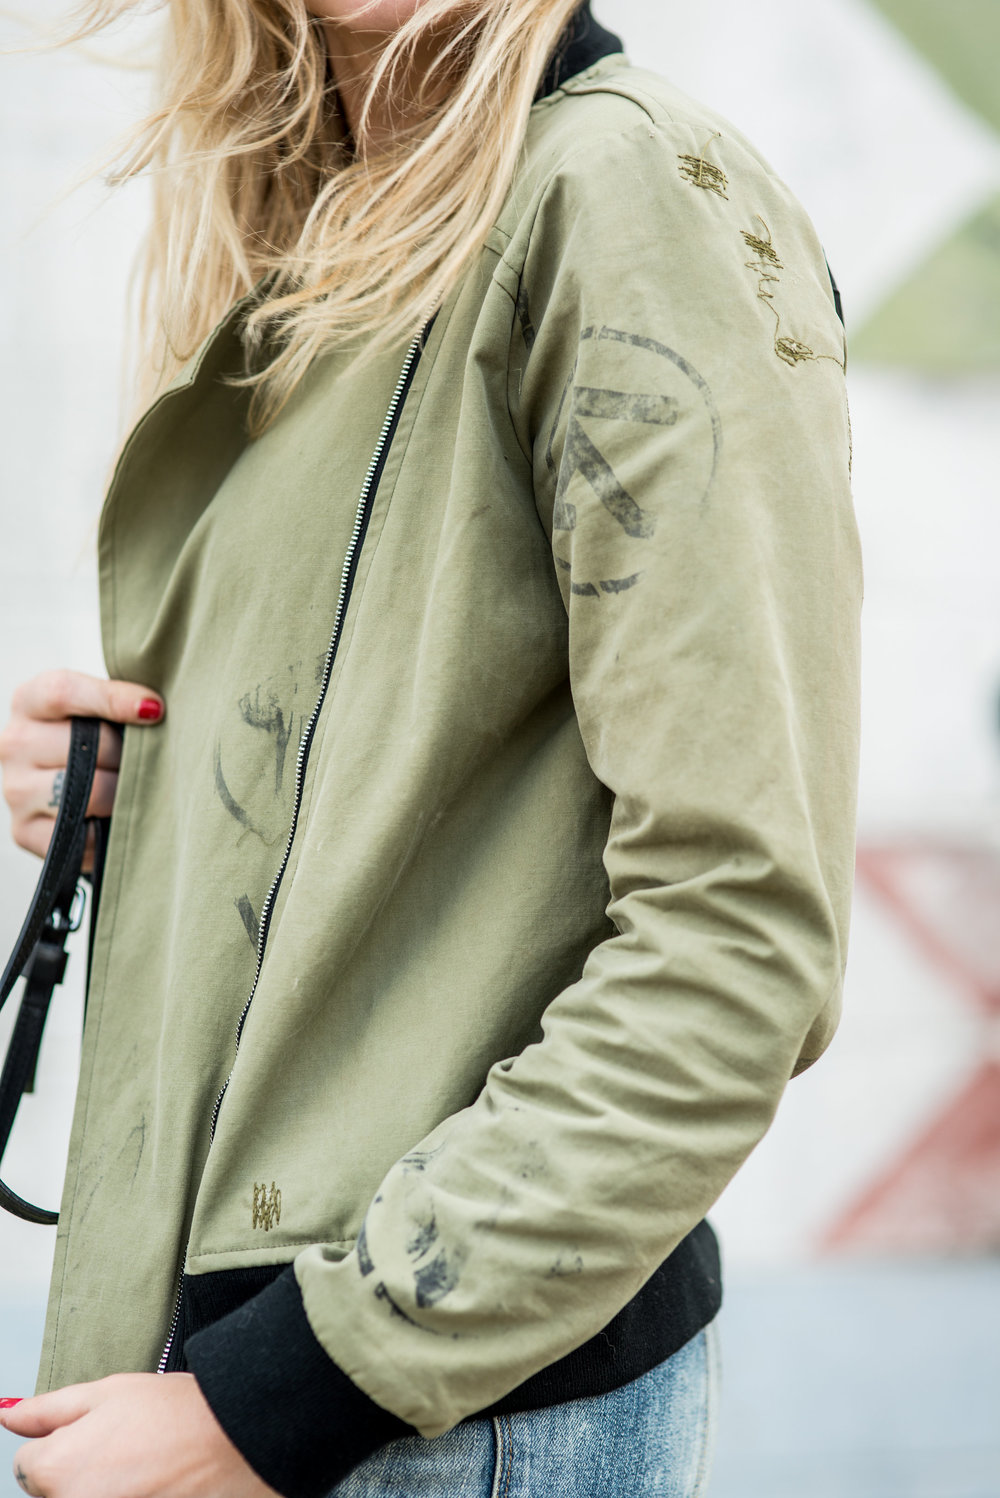 cchrst-military-green-jacket.jpg